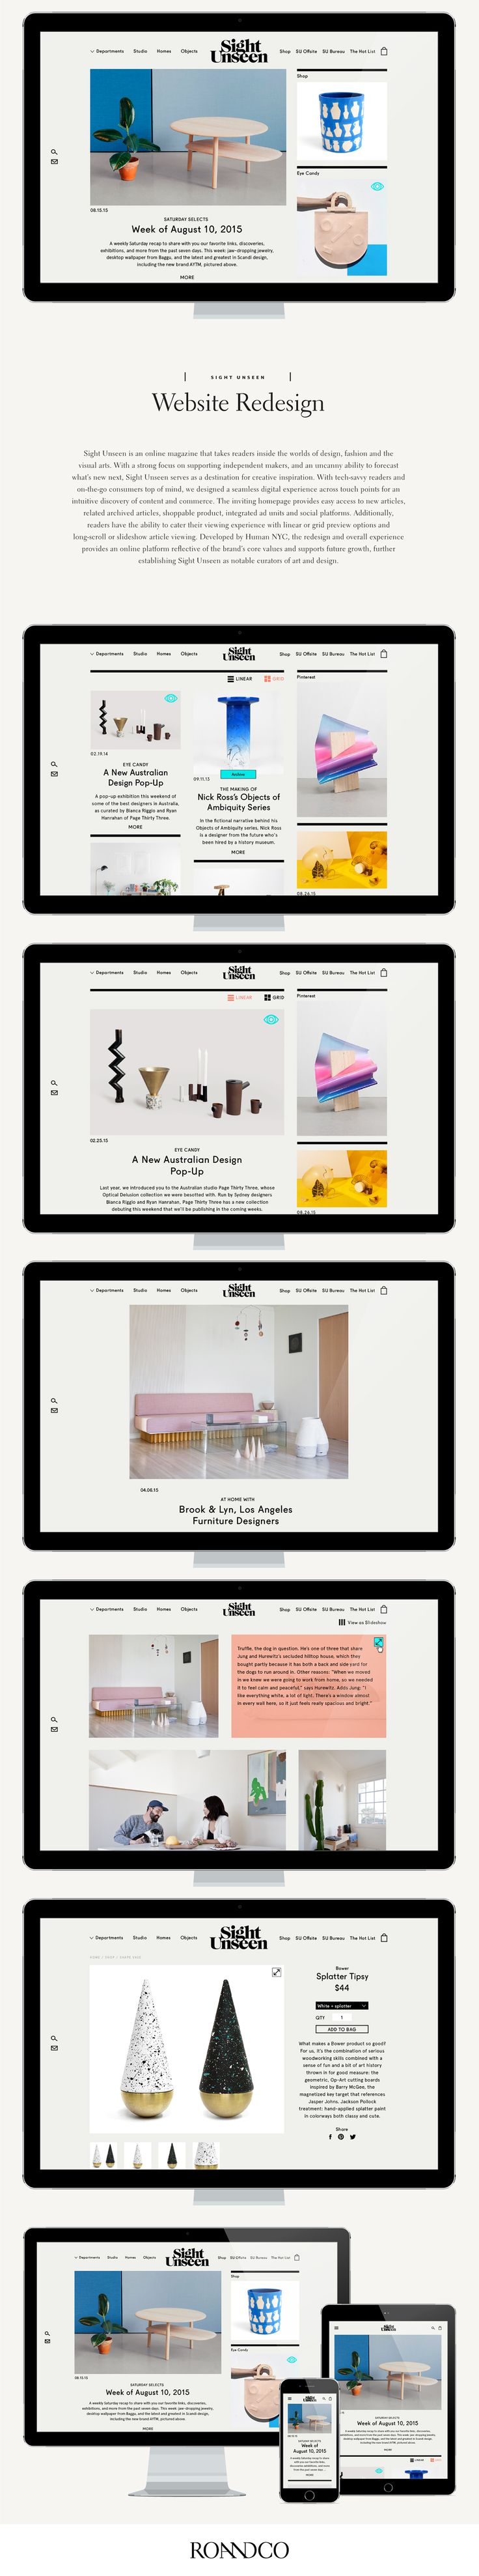 Sight Unseen is an online magazine that takes readers inside the worlds of design, fashion and the visual arts. With a strong focus on supporting independent makers, and an uncanny ability to forecast what's new next, Sight Unseen serves as a destination …